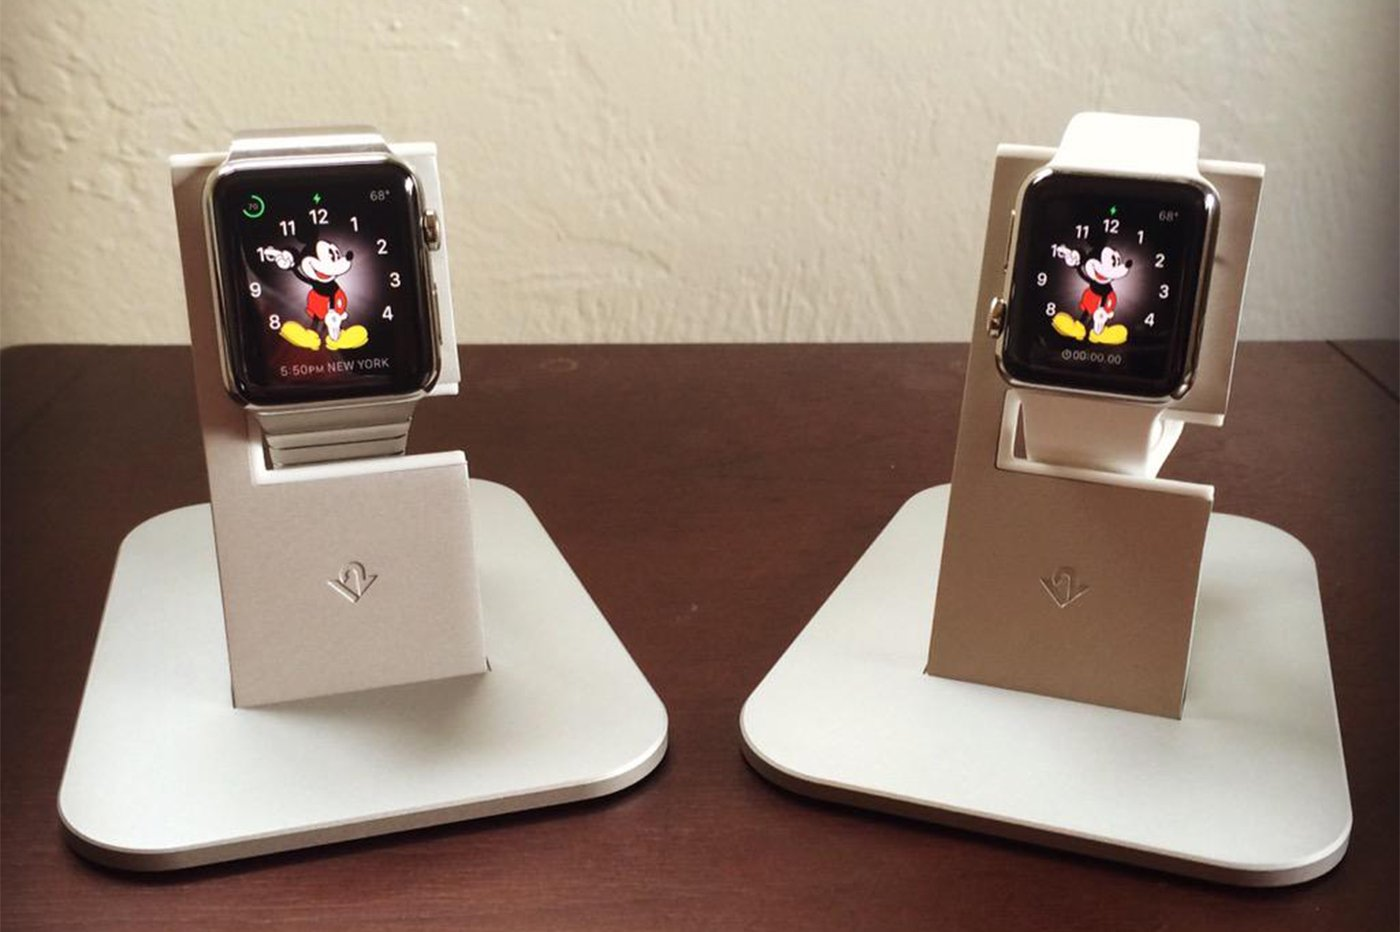 HiRise for Apple Watch According to Twitter